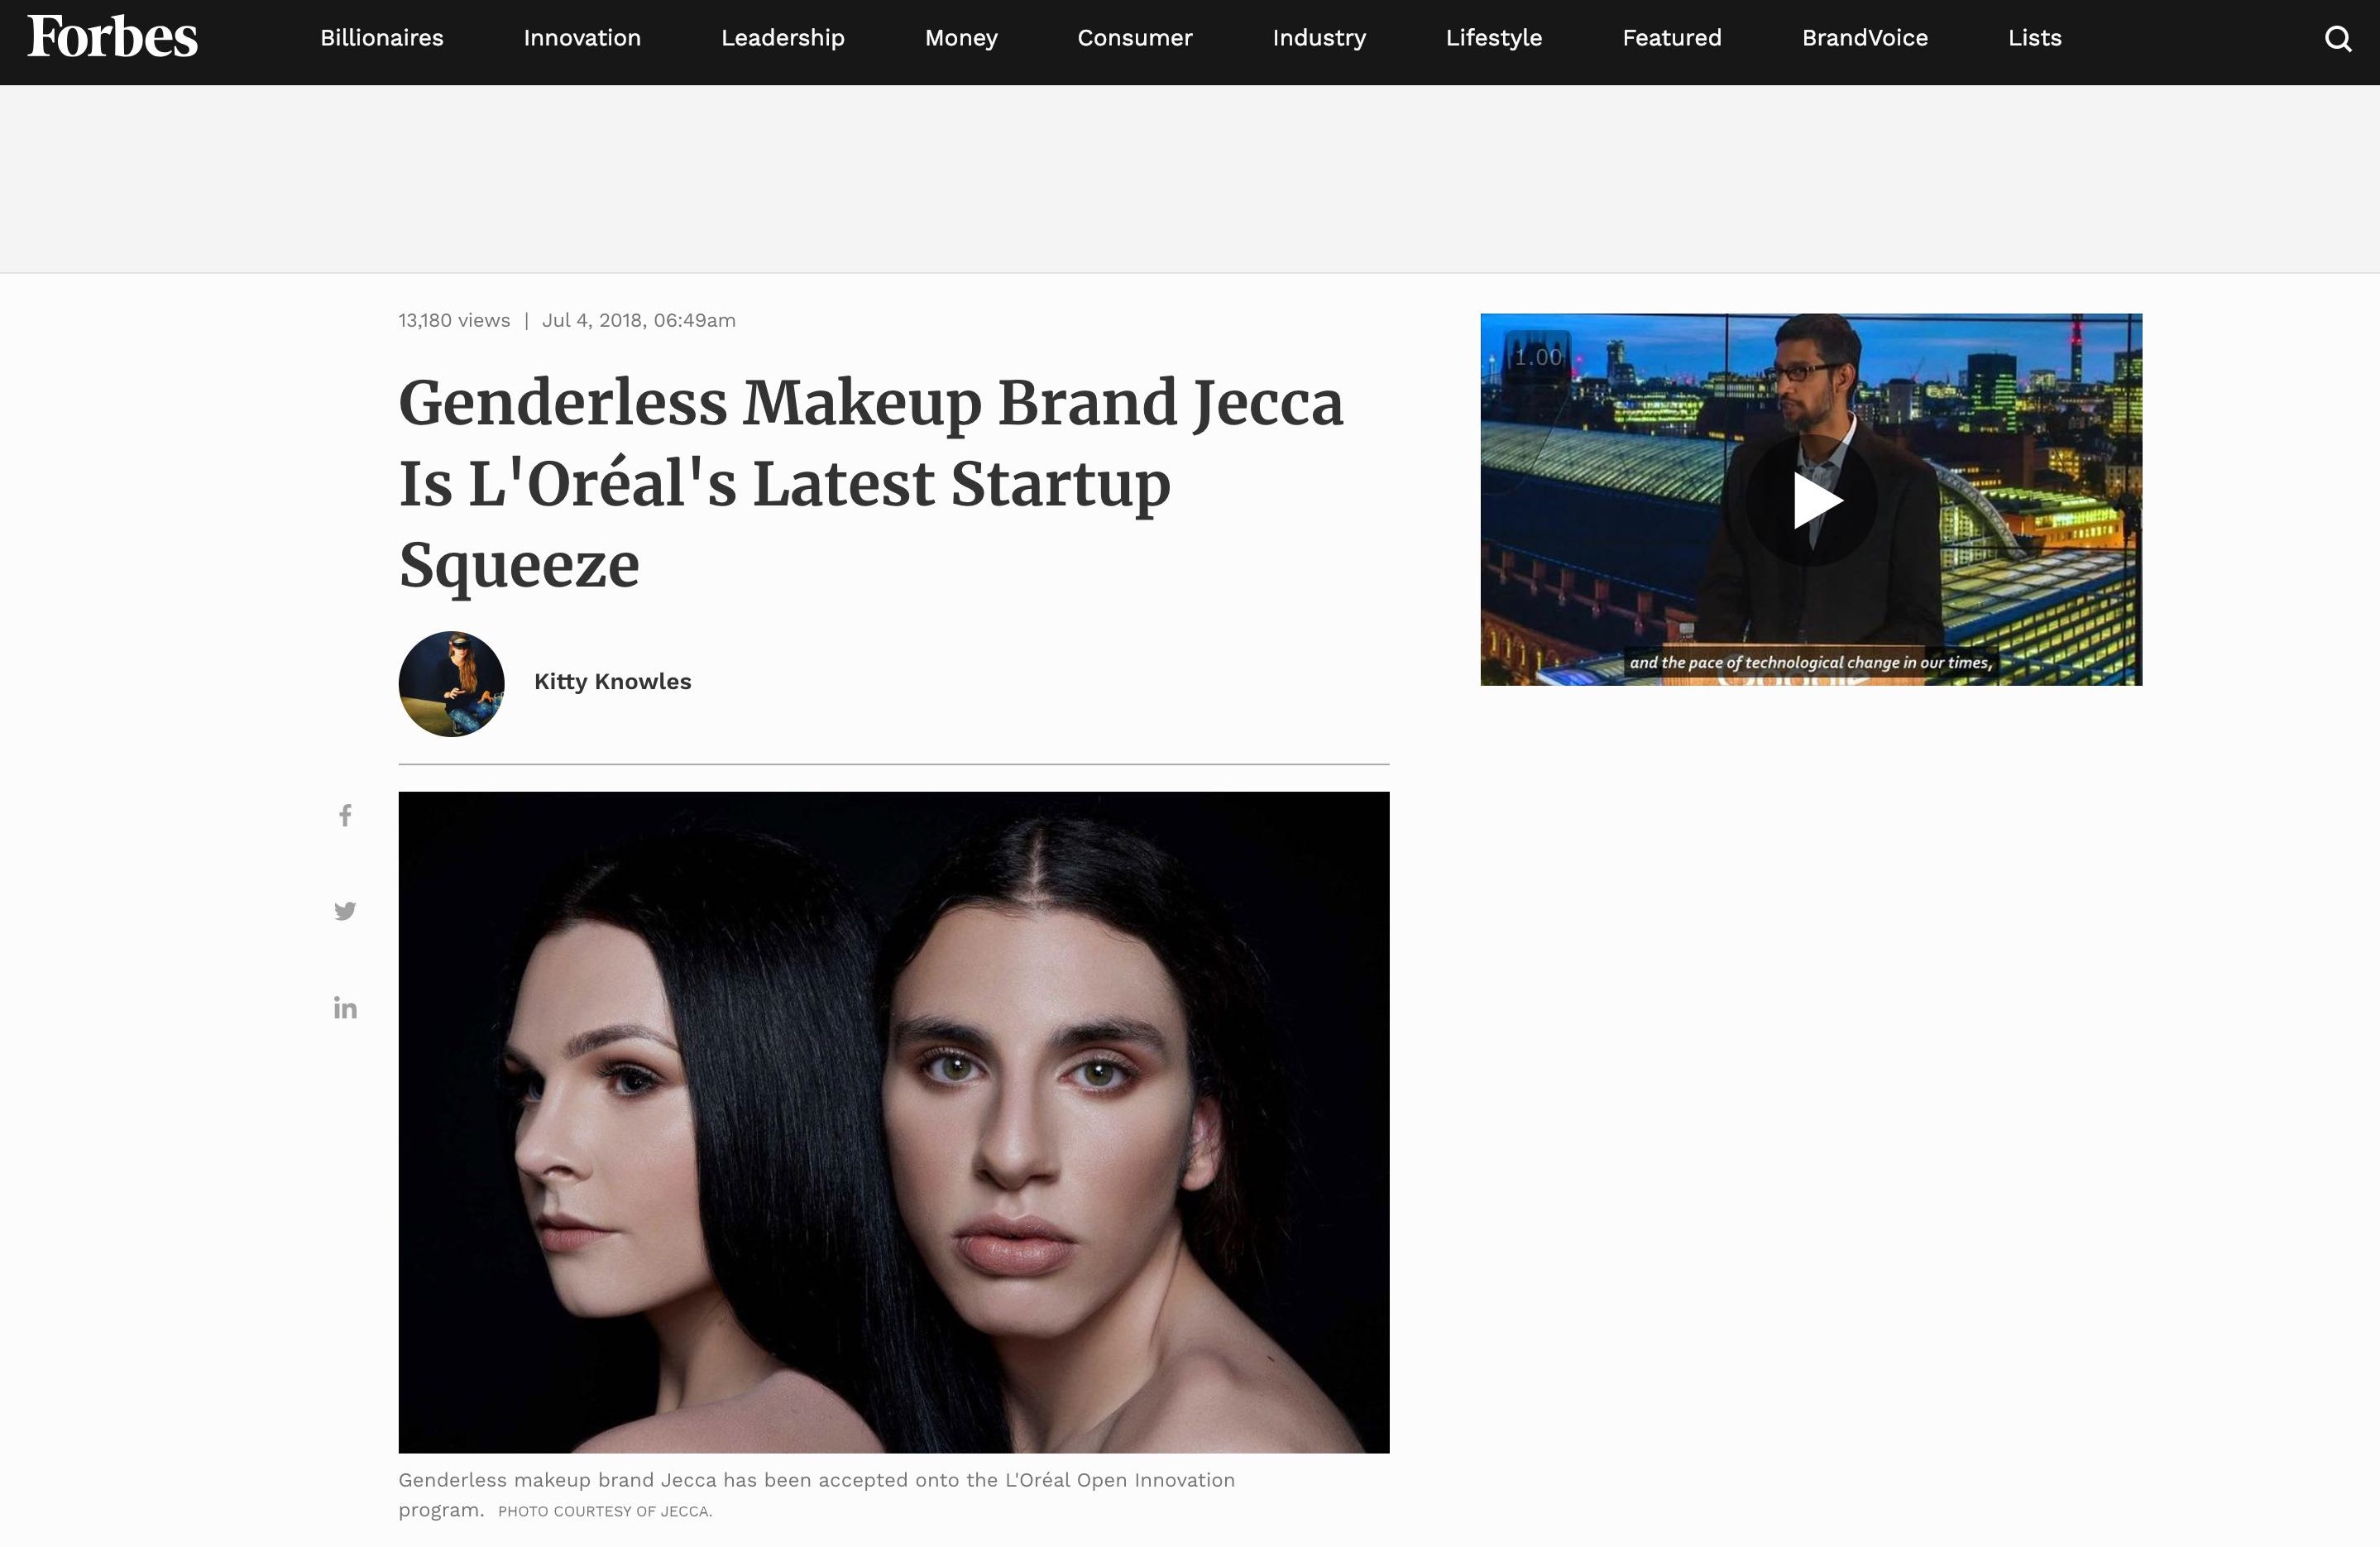 Forbes feature Delamar Academy graduate Jessica Blackler launches gender neutral L'Oreal brand, Jecca